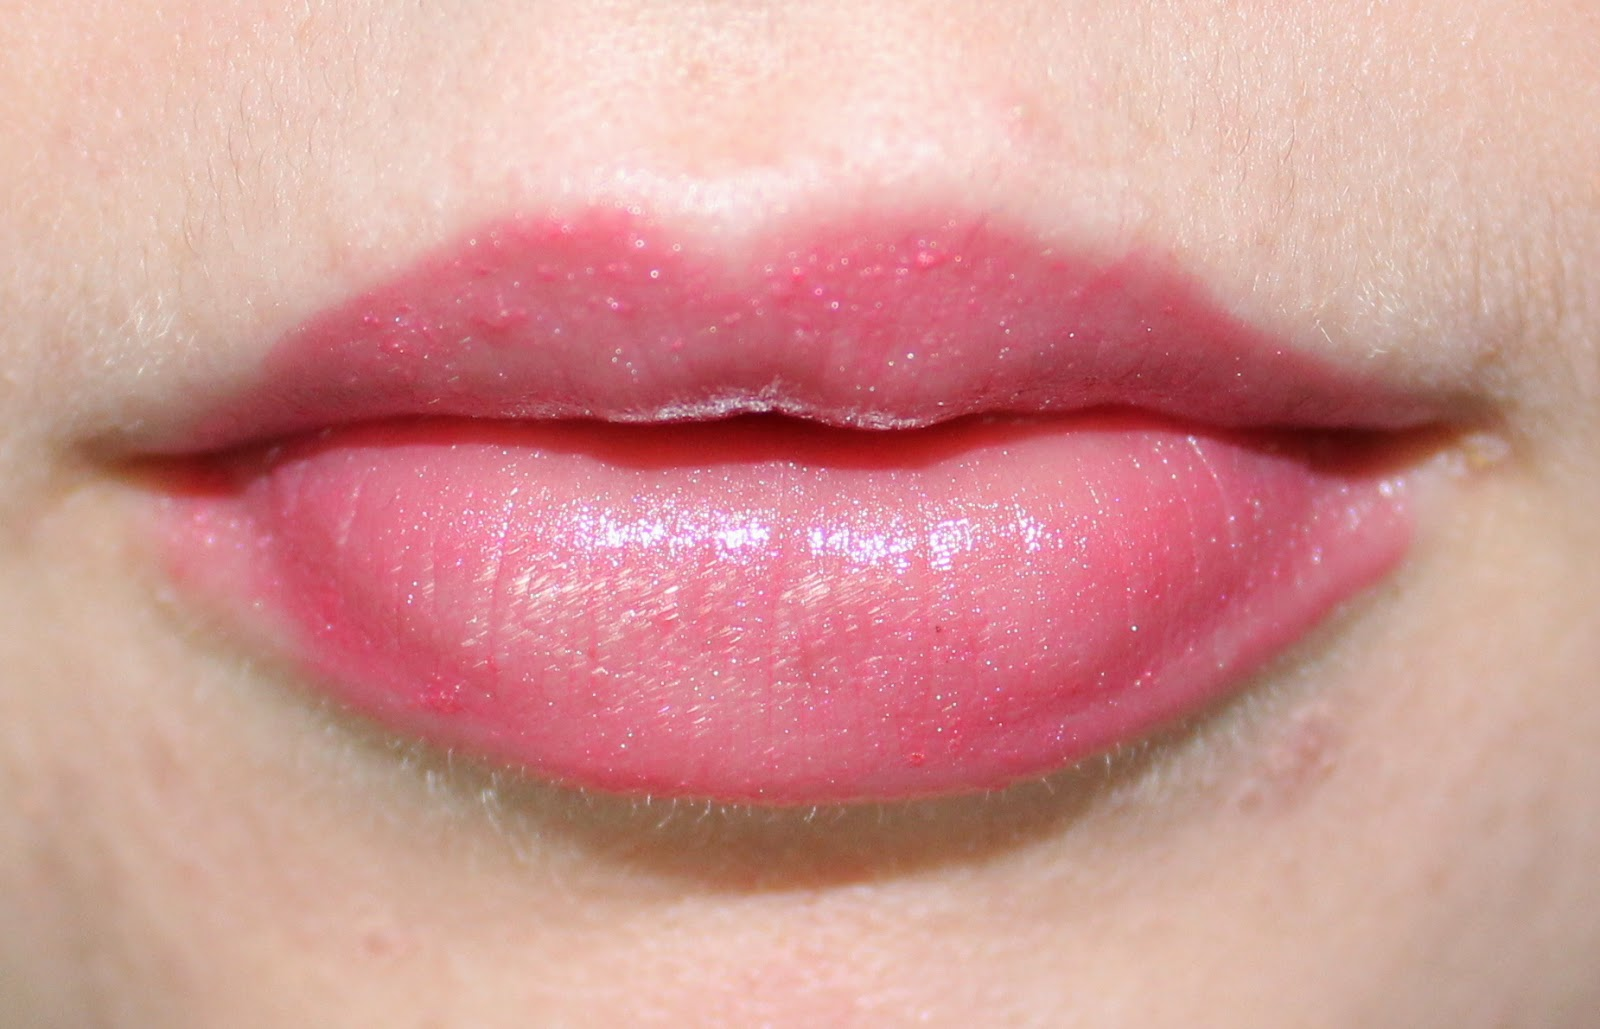 The Body Shop Colour Crush Shine Lipstick in 03 Pink Charming on Lips